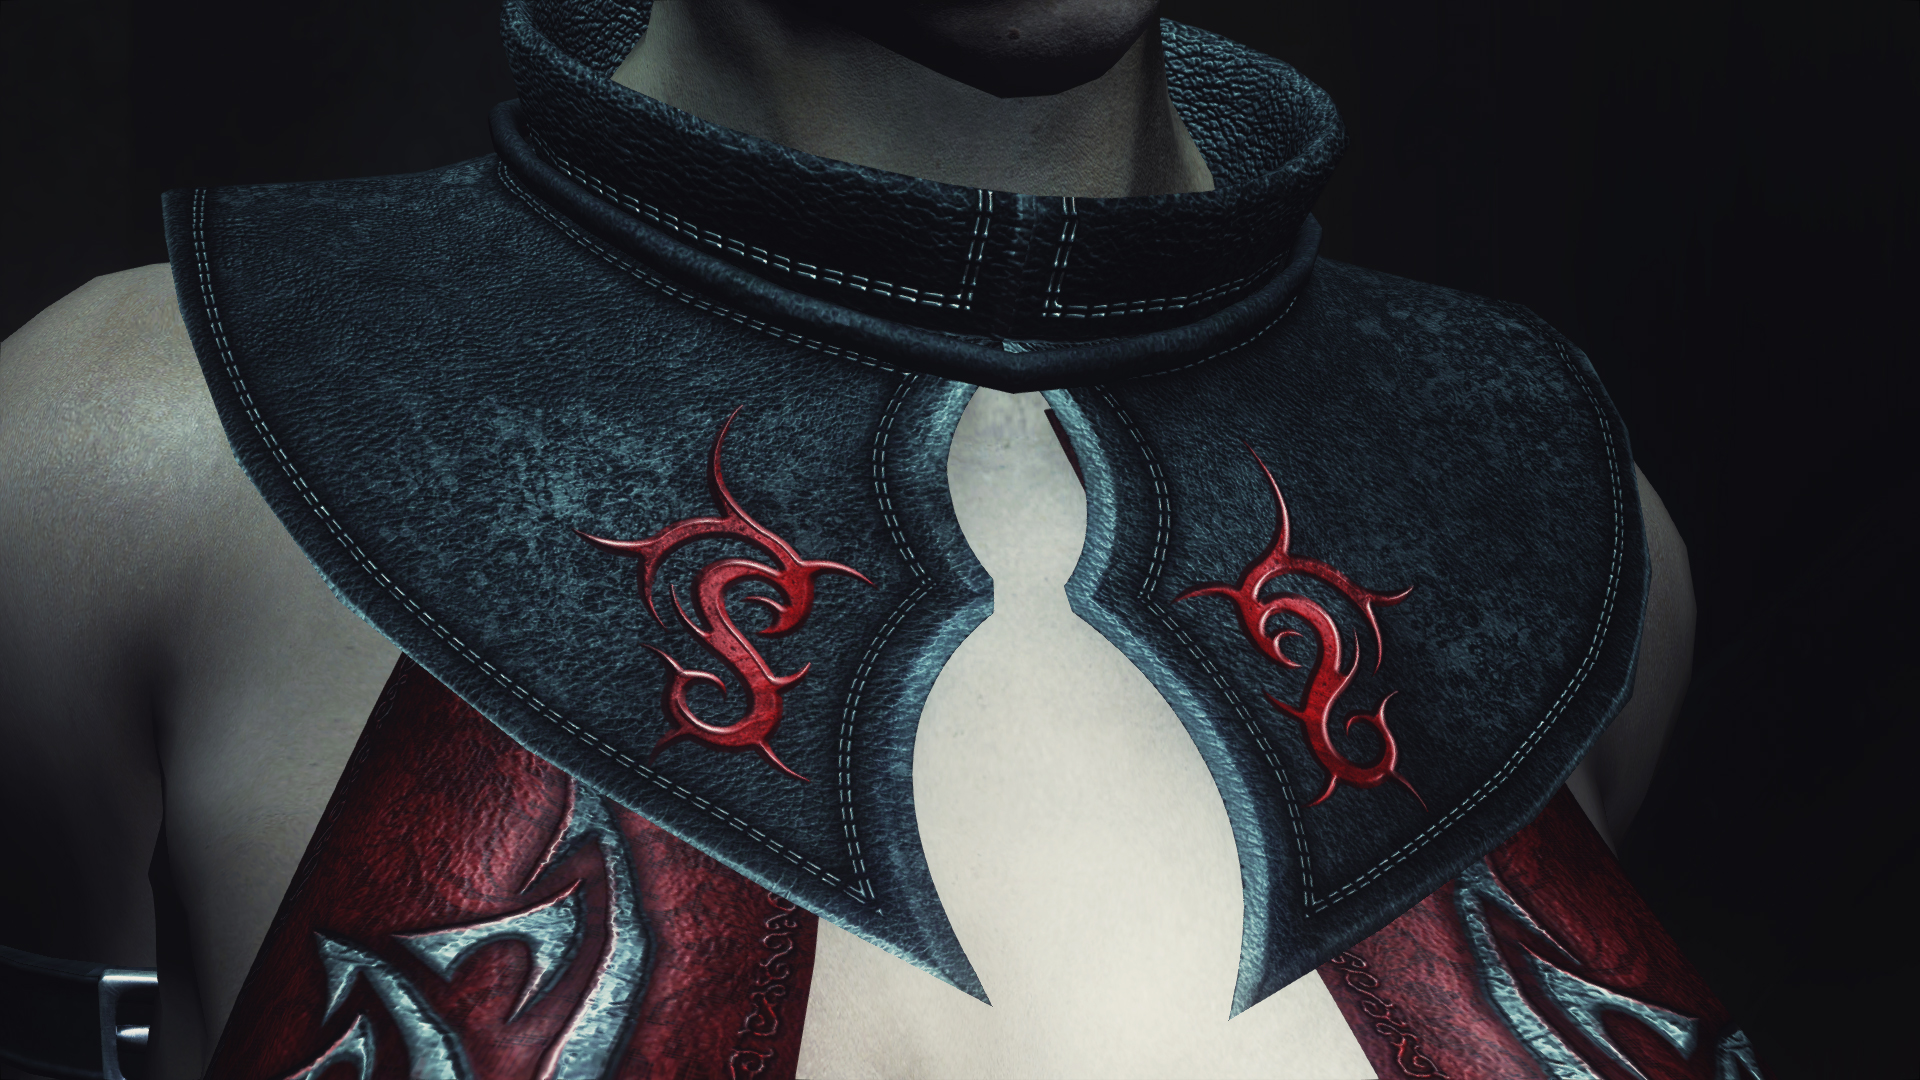 Forever Darkness Ashes of Eris LIGHT ARMOR TEXTURES DETAIL 1